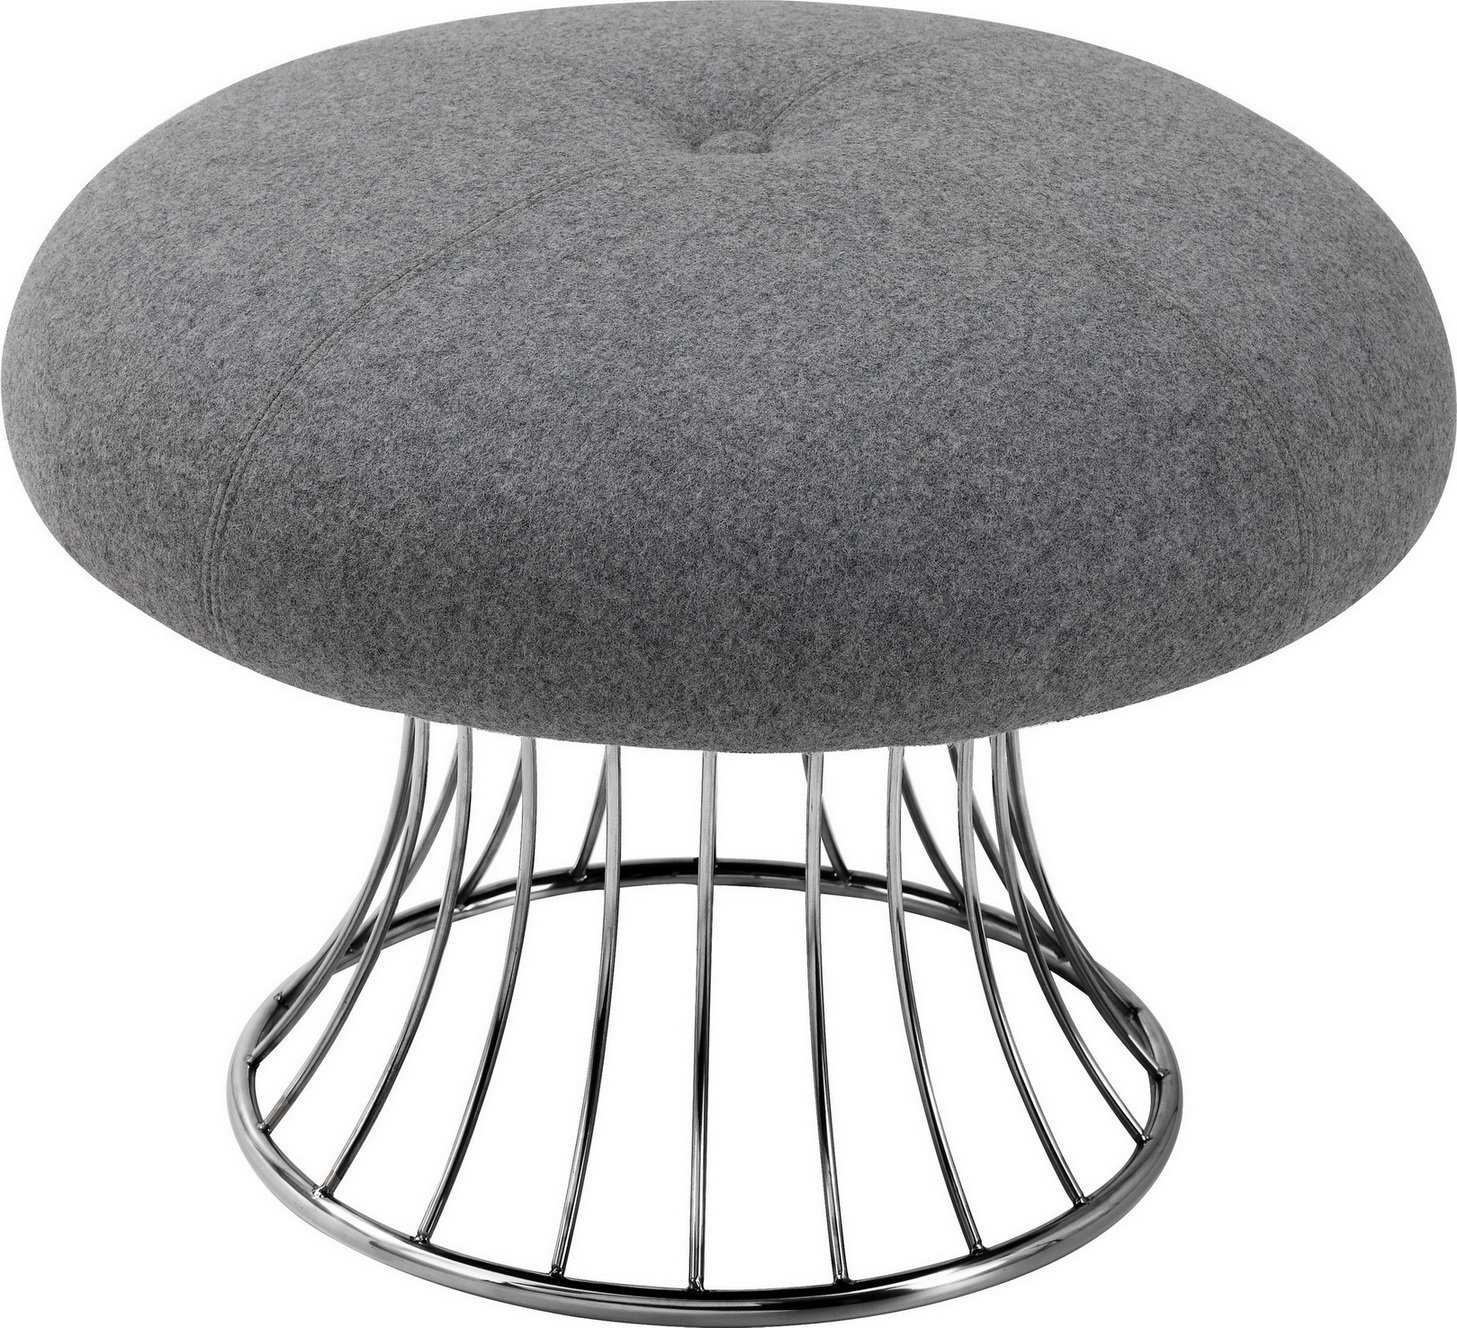 Hot Item Modern Casual Ottoman Chair For Living Room Hotel Home Furniture Metal Frame